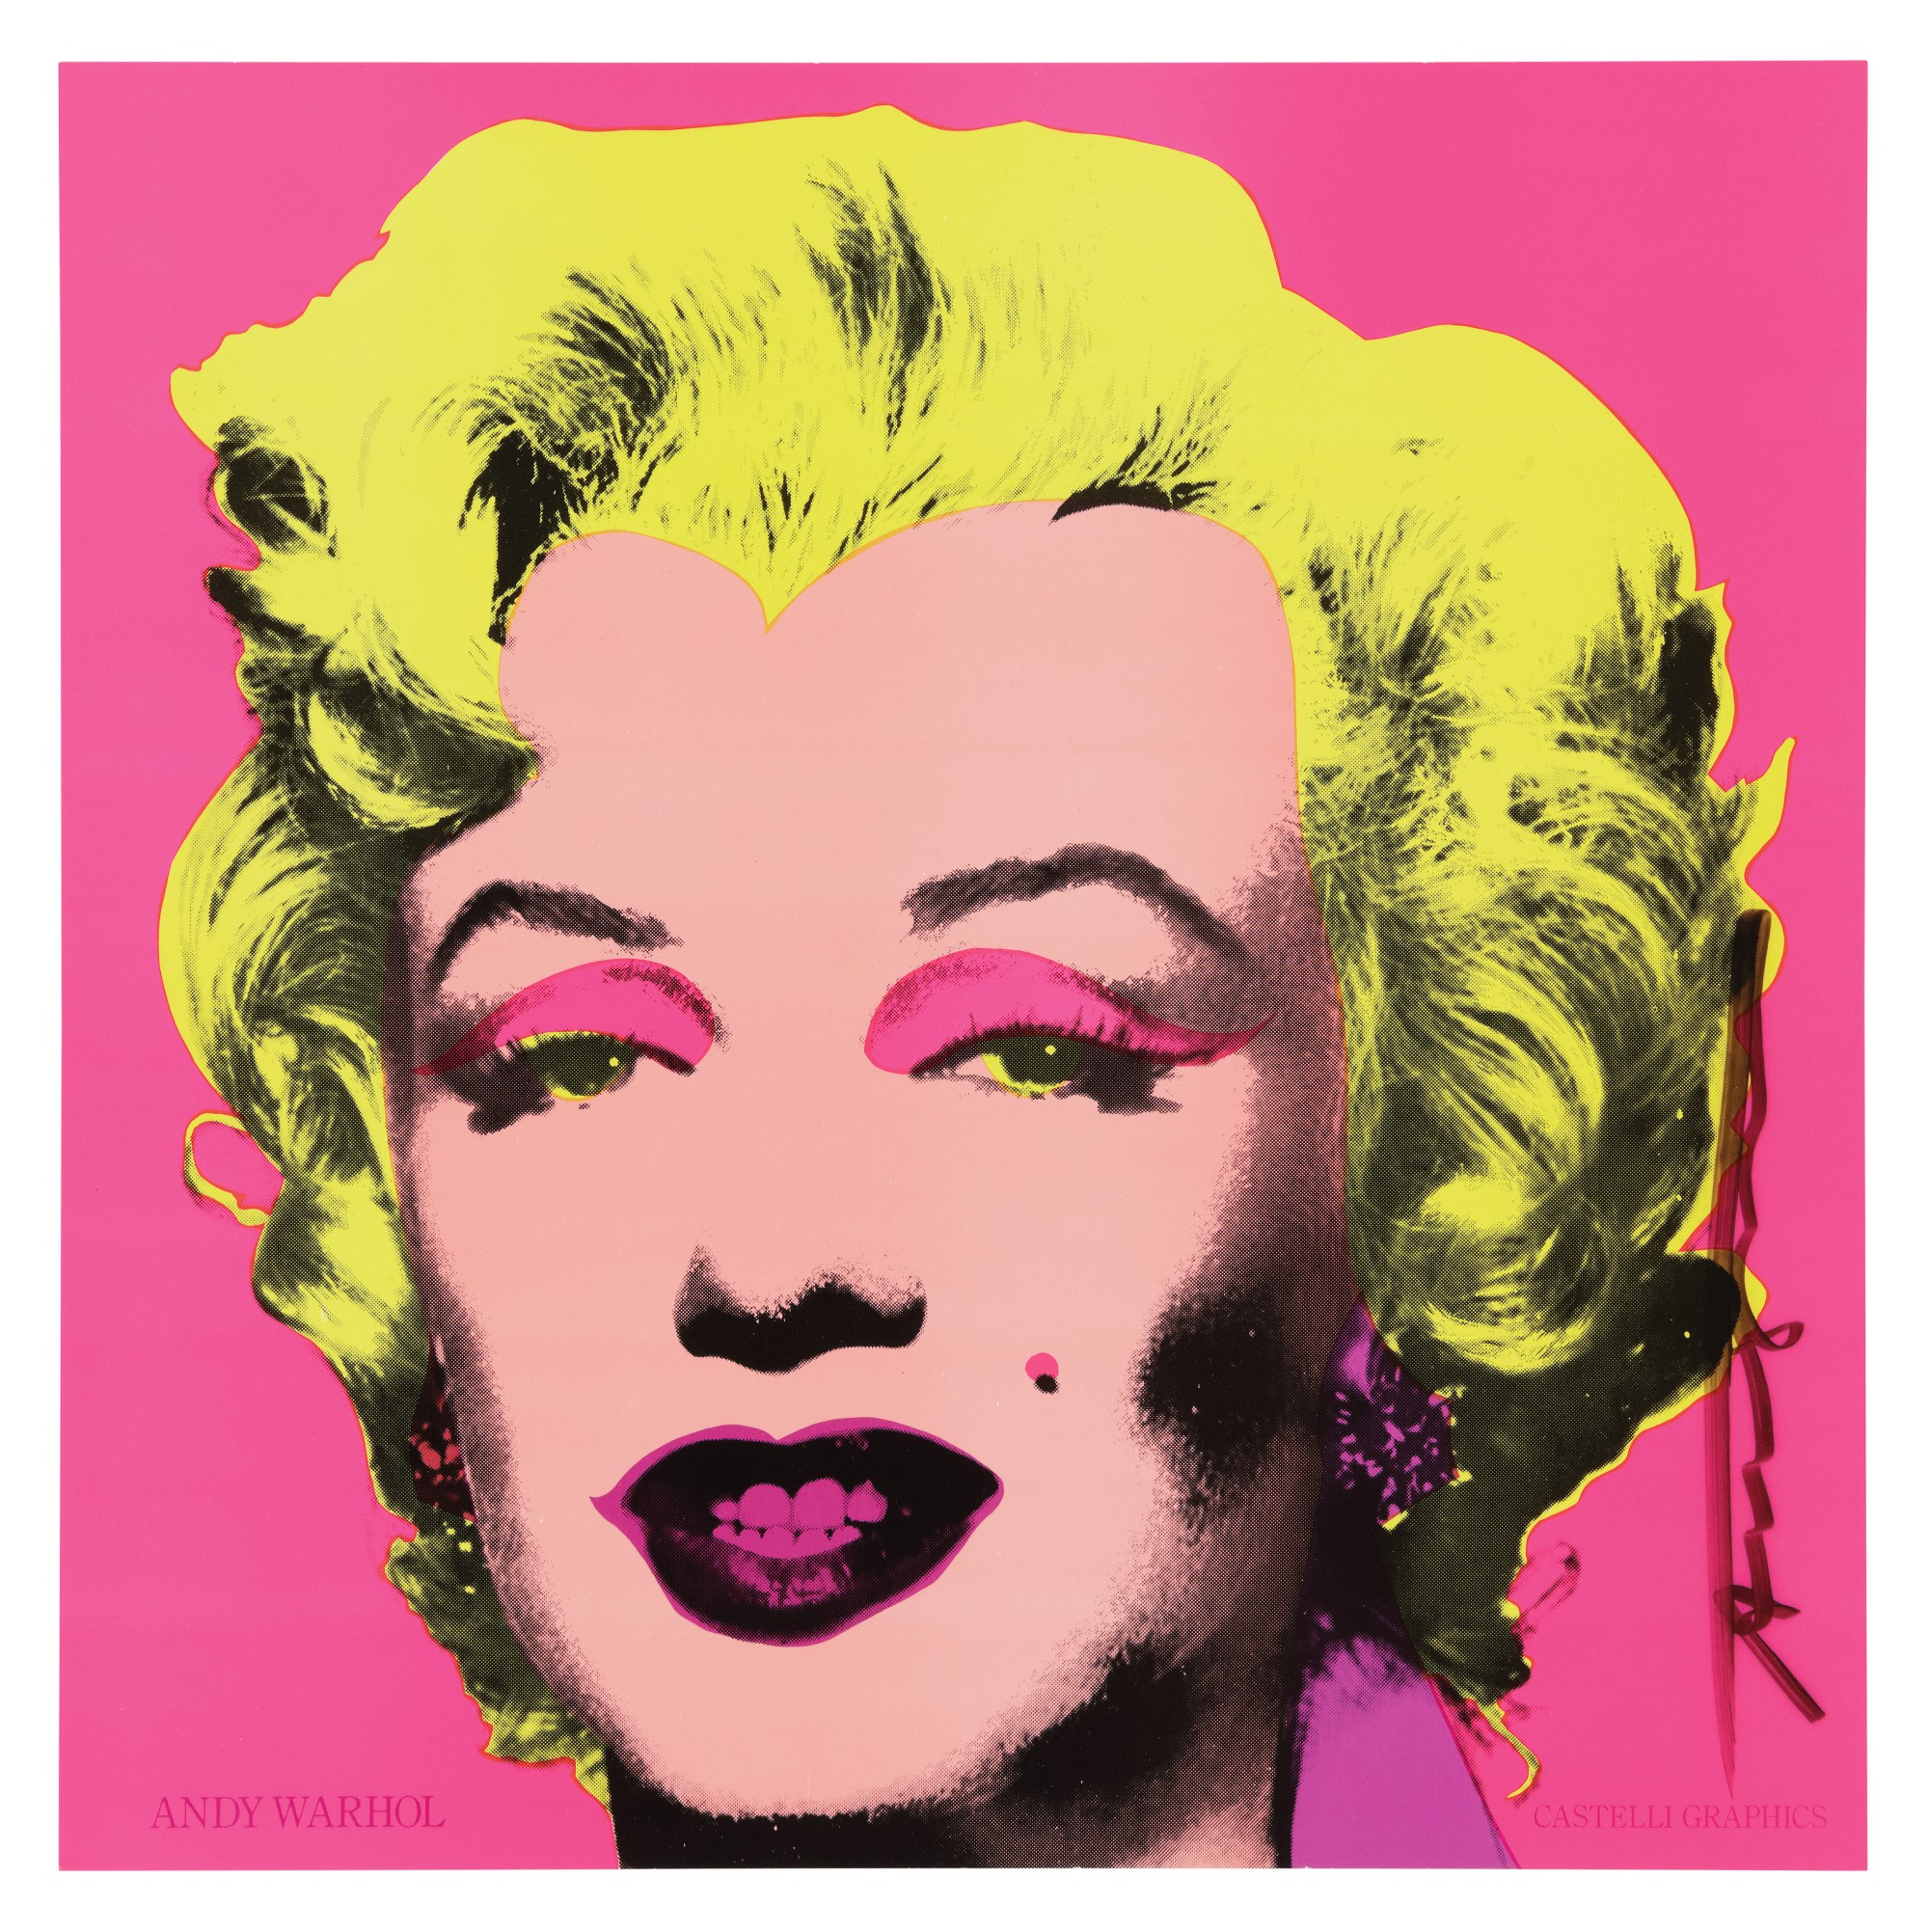 ANDY WARHOL | MARILYN (ANNOUNCEMENT) (NOT IN FELDMAN & SCHELLMANN)